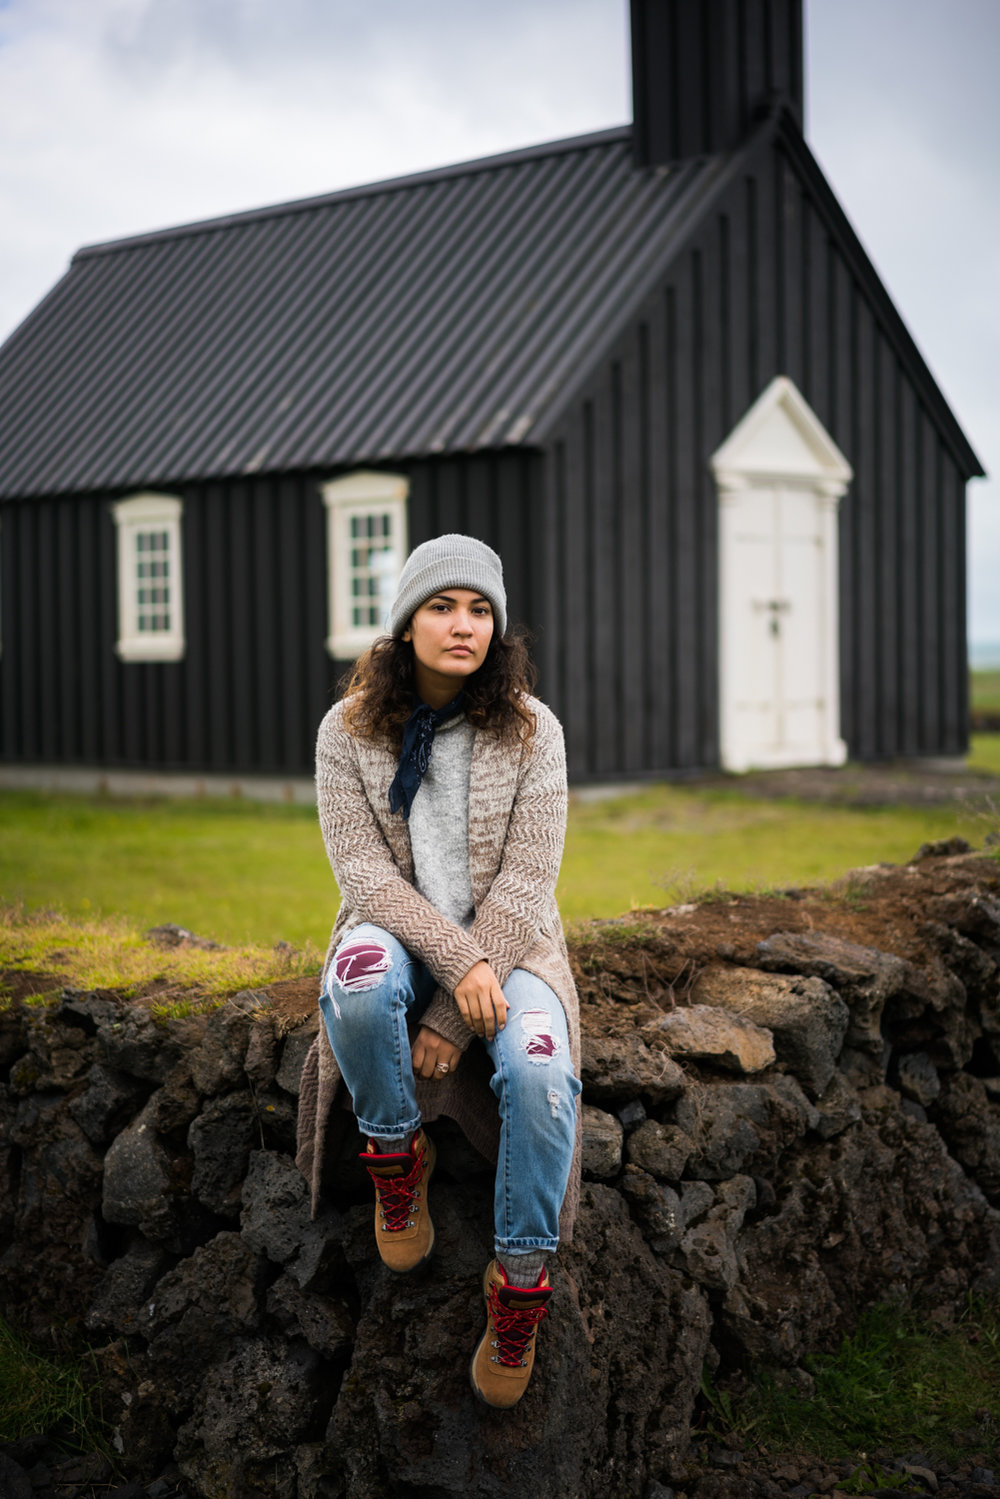 iceland black church Búðakirkja amanda lee  austin paz